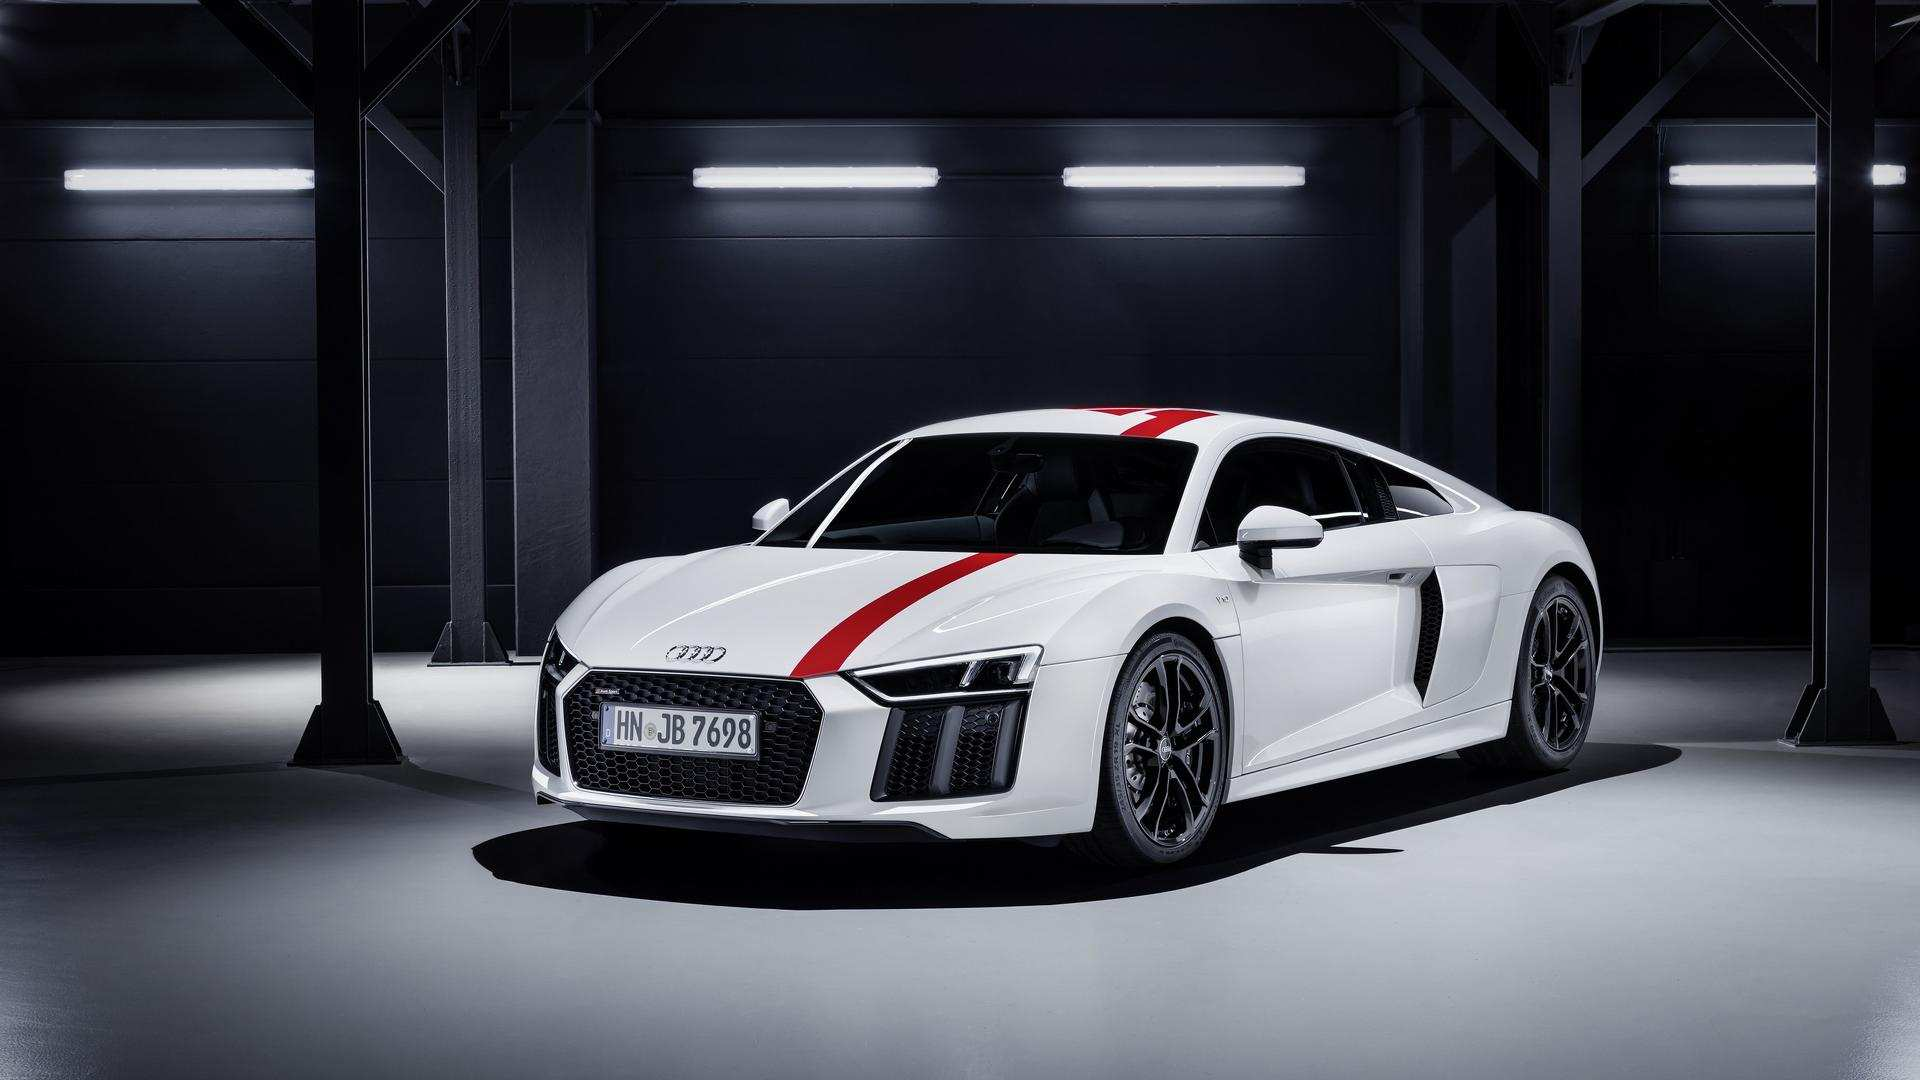 60 All New Pictures Of 2020 Audi R8 New Review for Pictures Of 2020 Audi R8